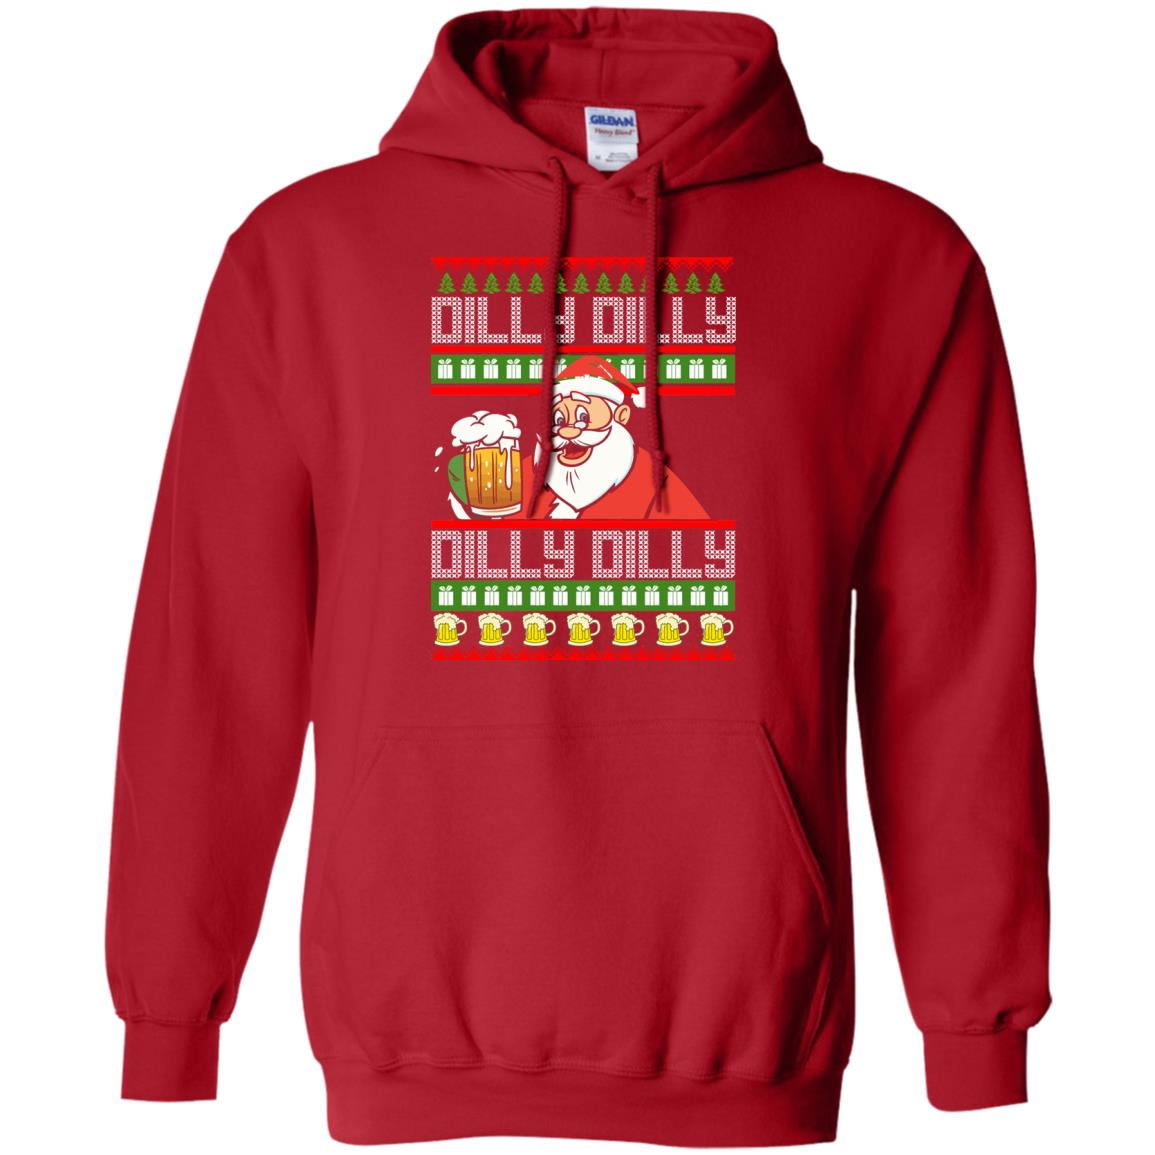 image 4187 - Dilly Dilly Christmas Sweater, Shirt, Hoodie